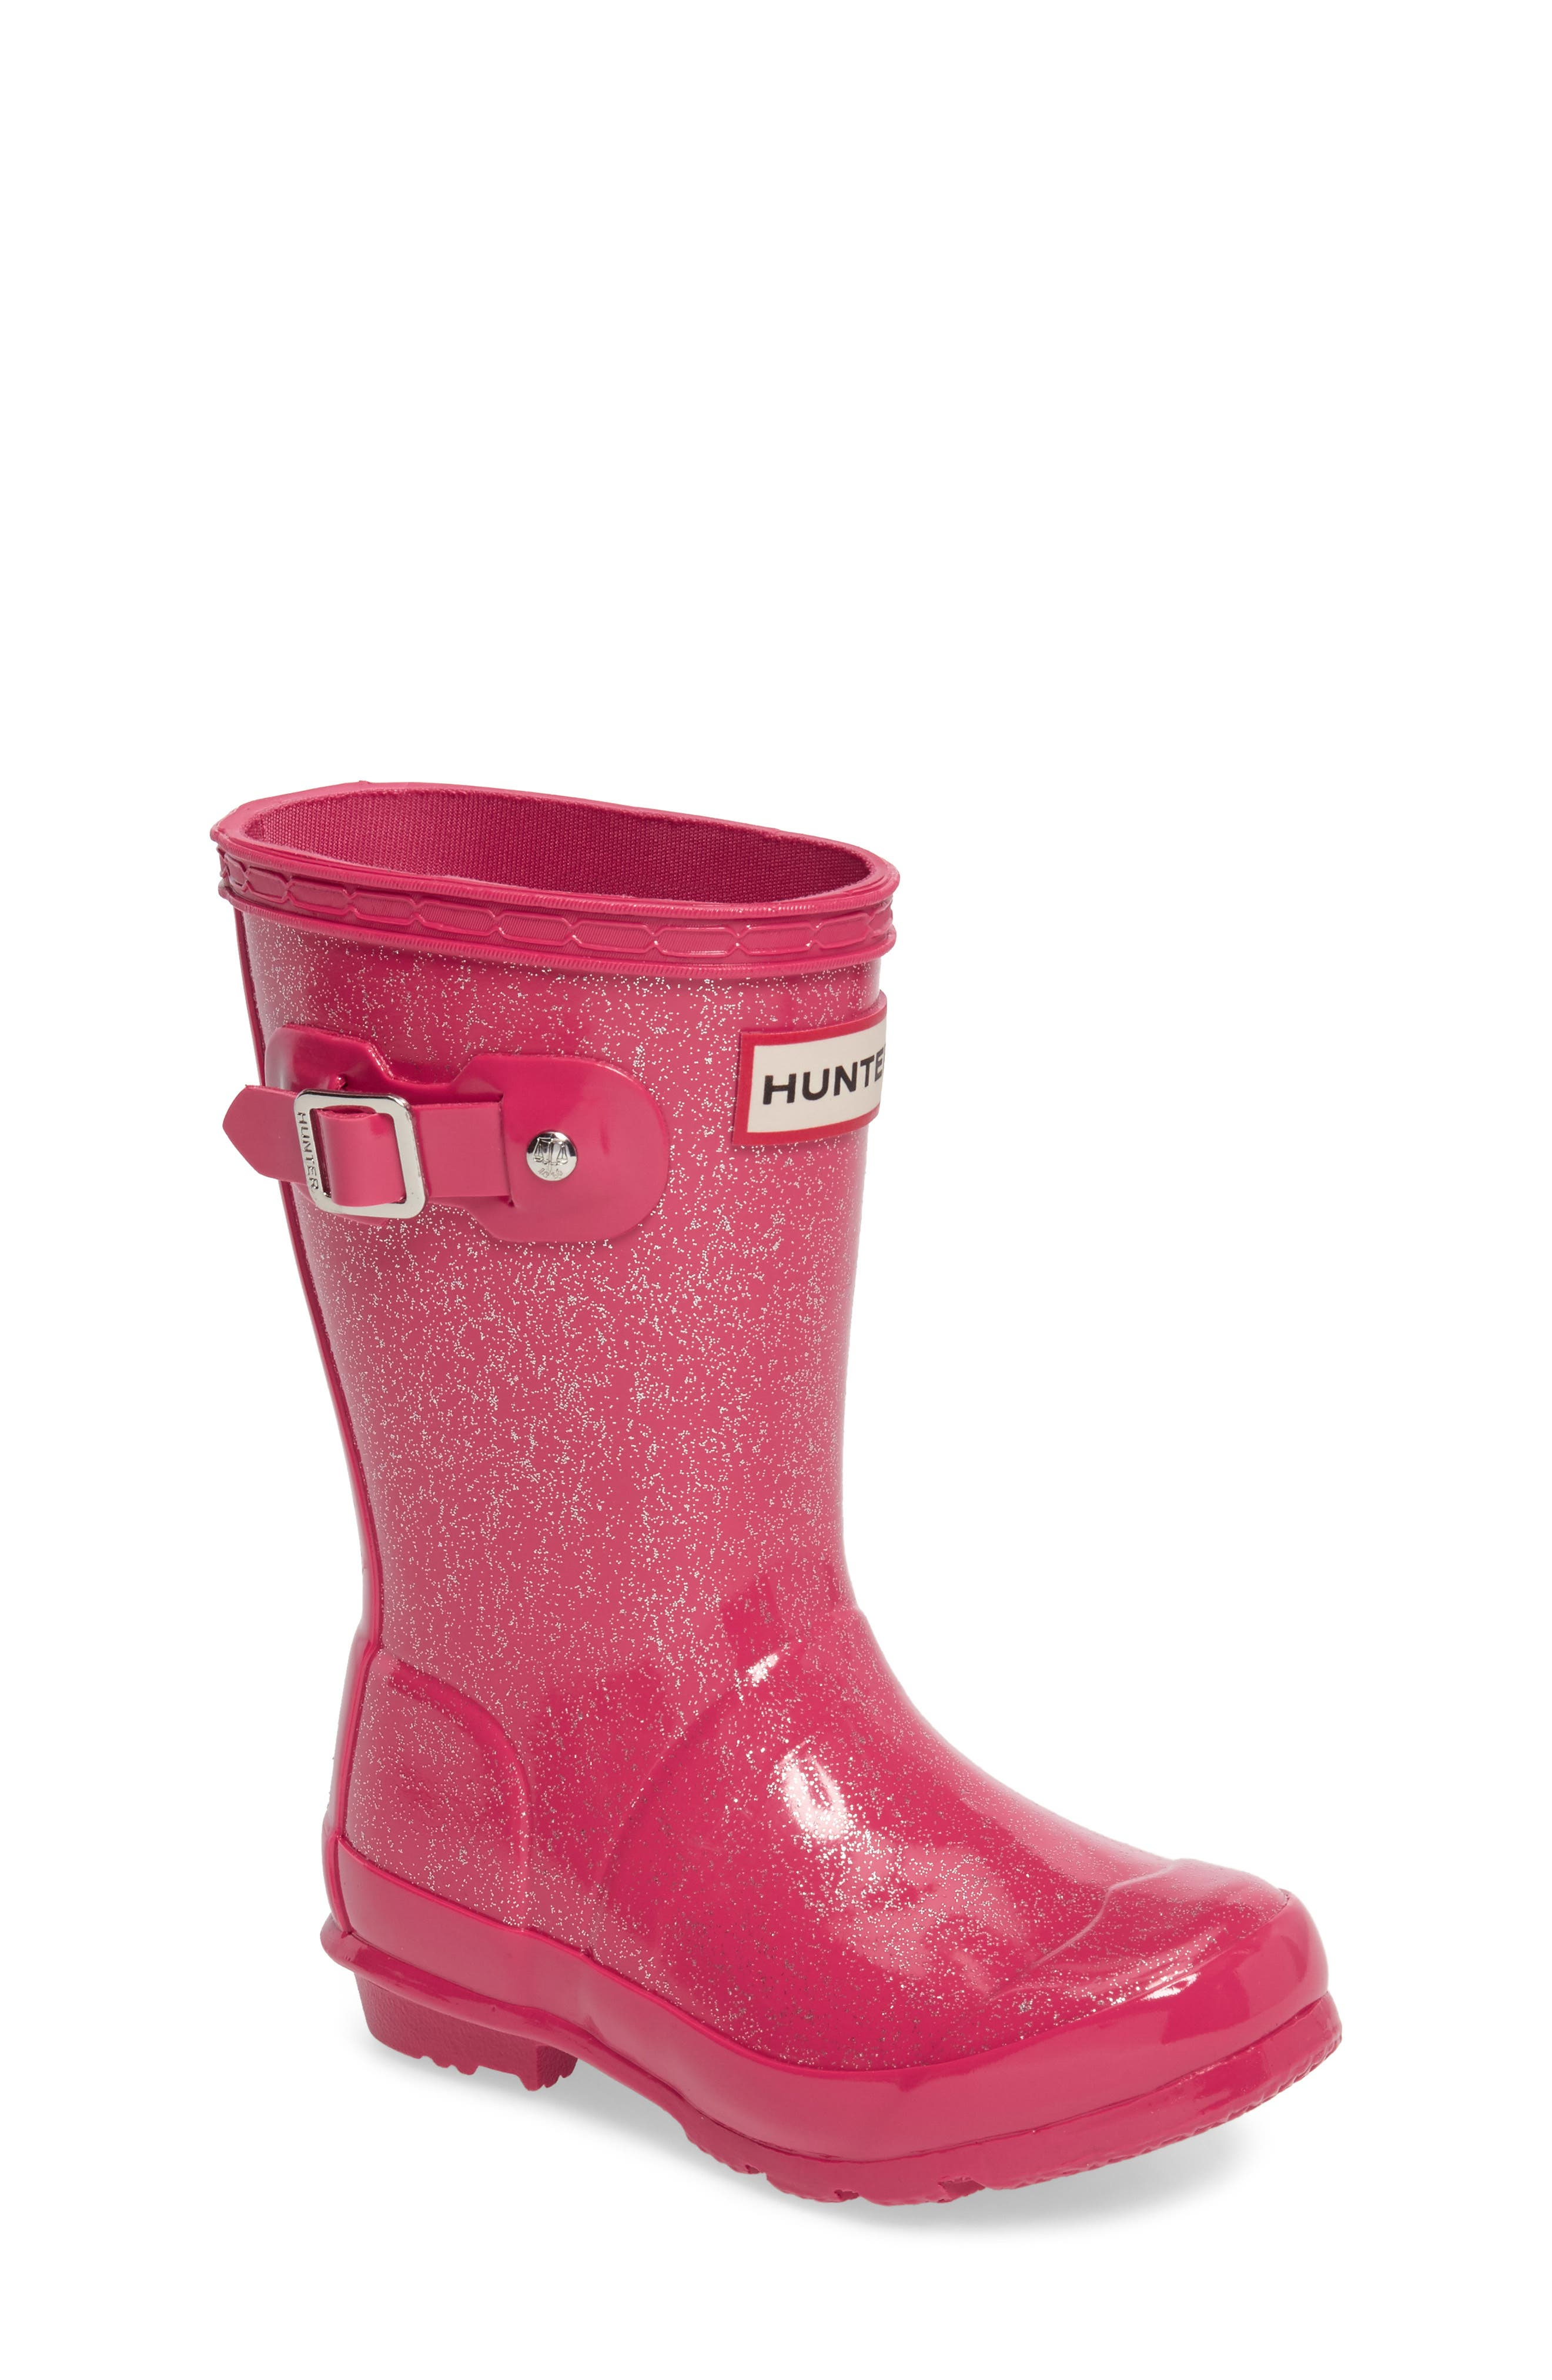 Alternate Image 1 Selected - Hunter 'Original Glitter' Rain Boot (Toddler, Little Kid & Big Kid)